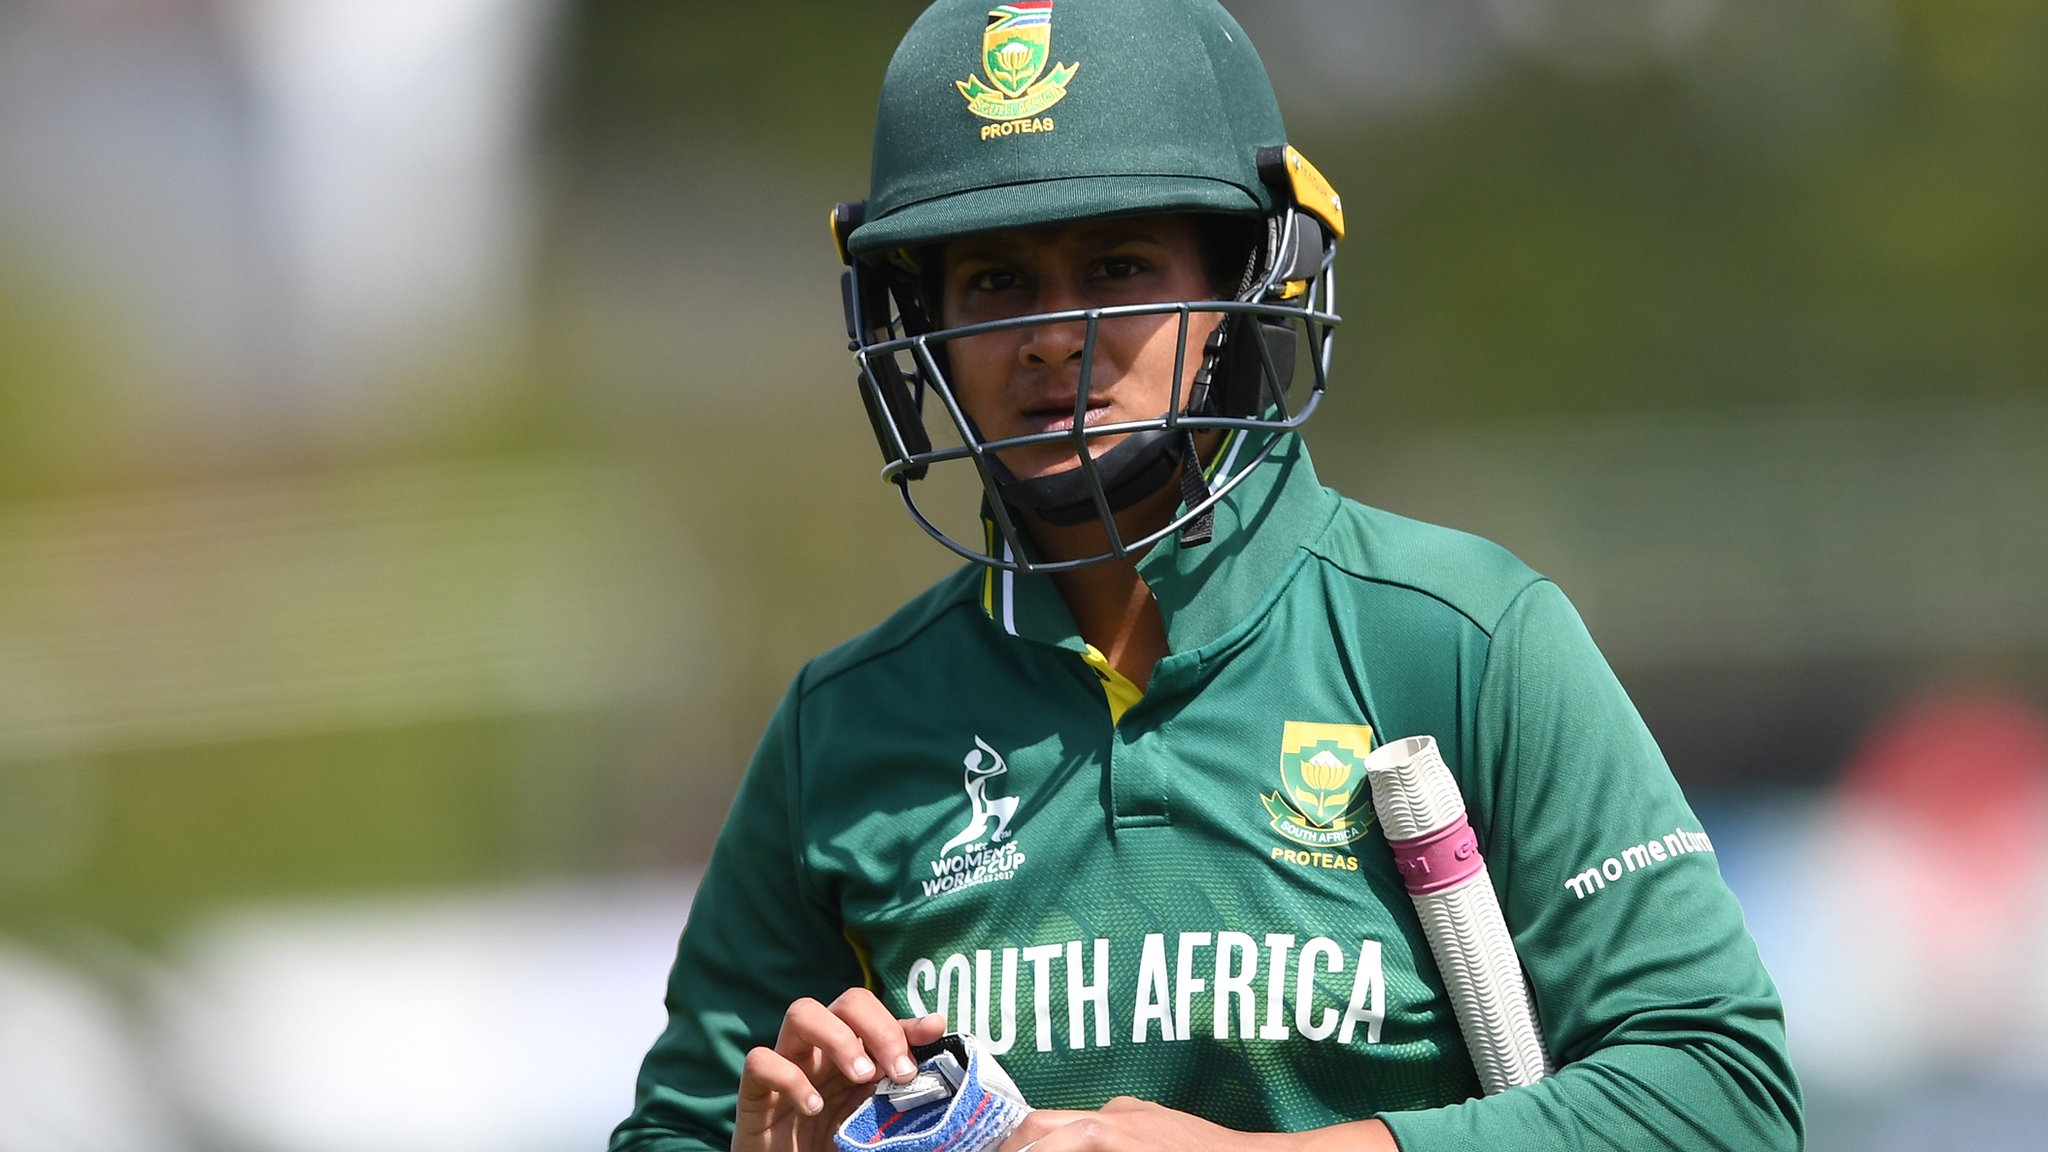 SA keeper Chetty to miss Women's World T20